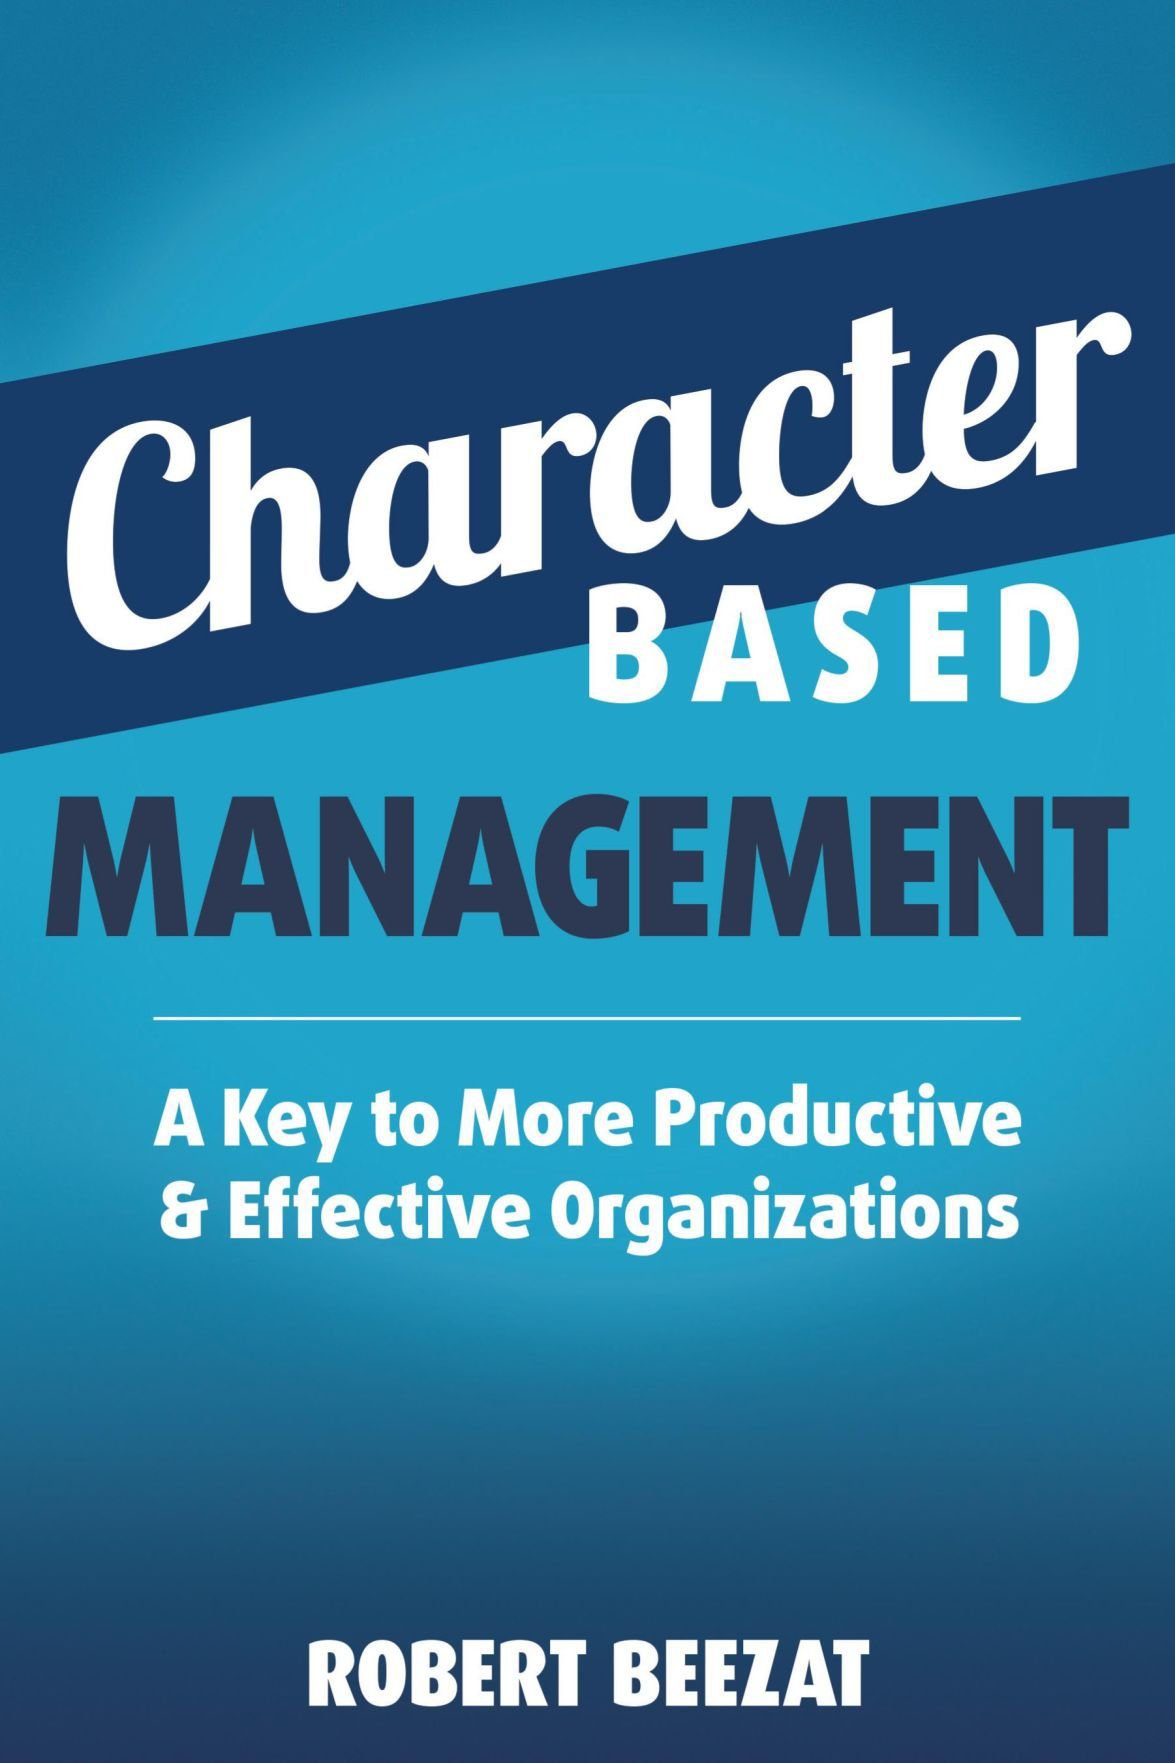 'Character Based Management: A Key to More Productive & Effective Organizations'